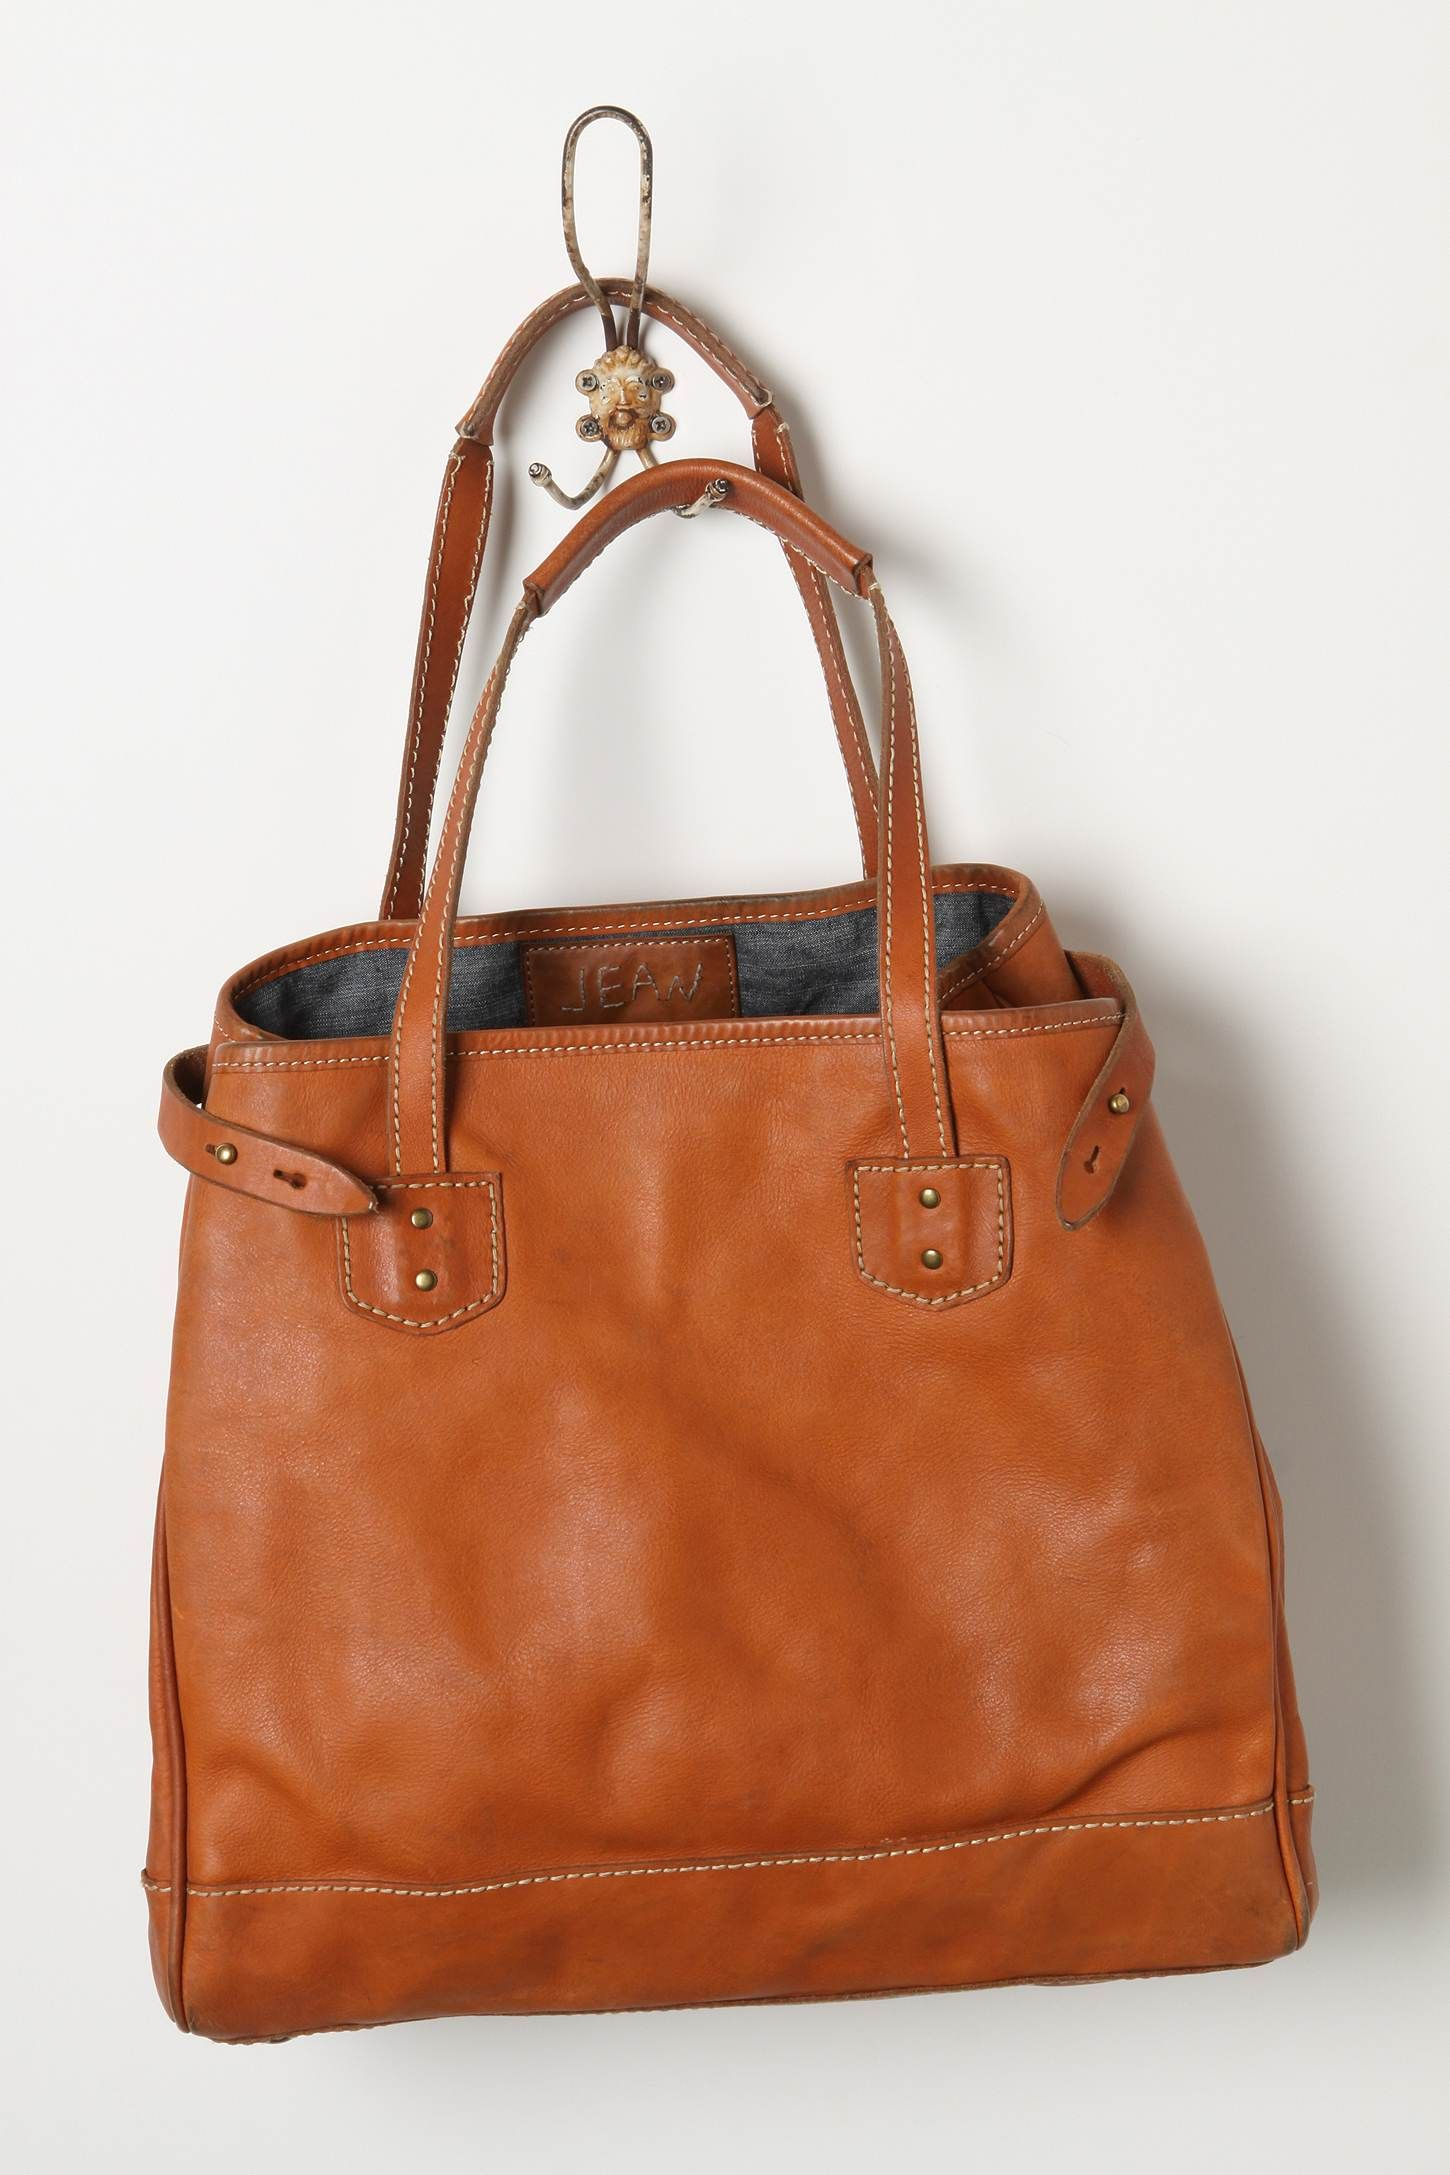 Rancher Tote $448 #Anthropologie #WornIn #Leather